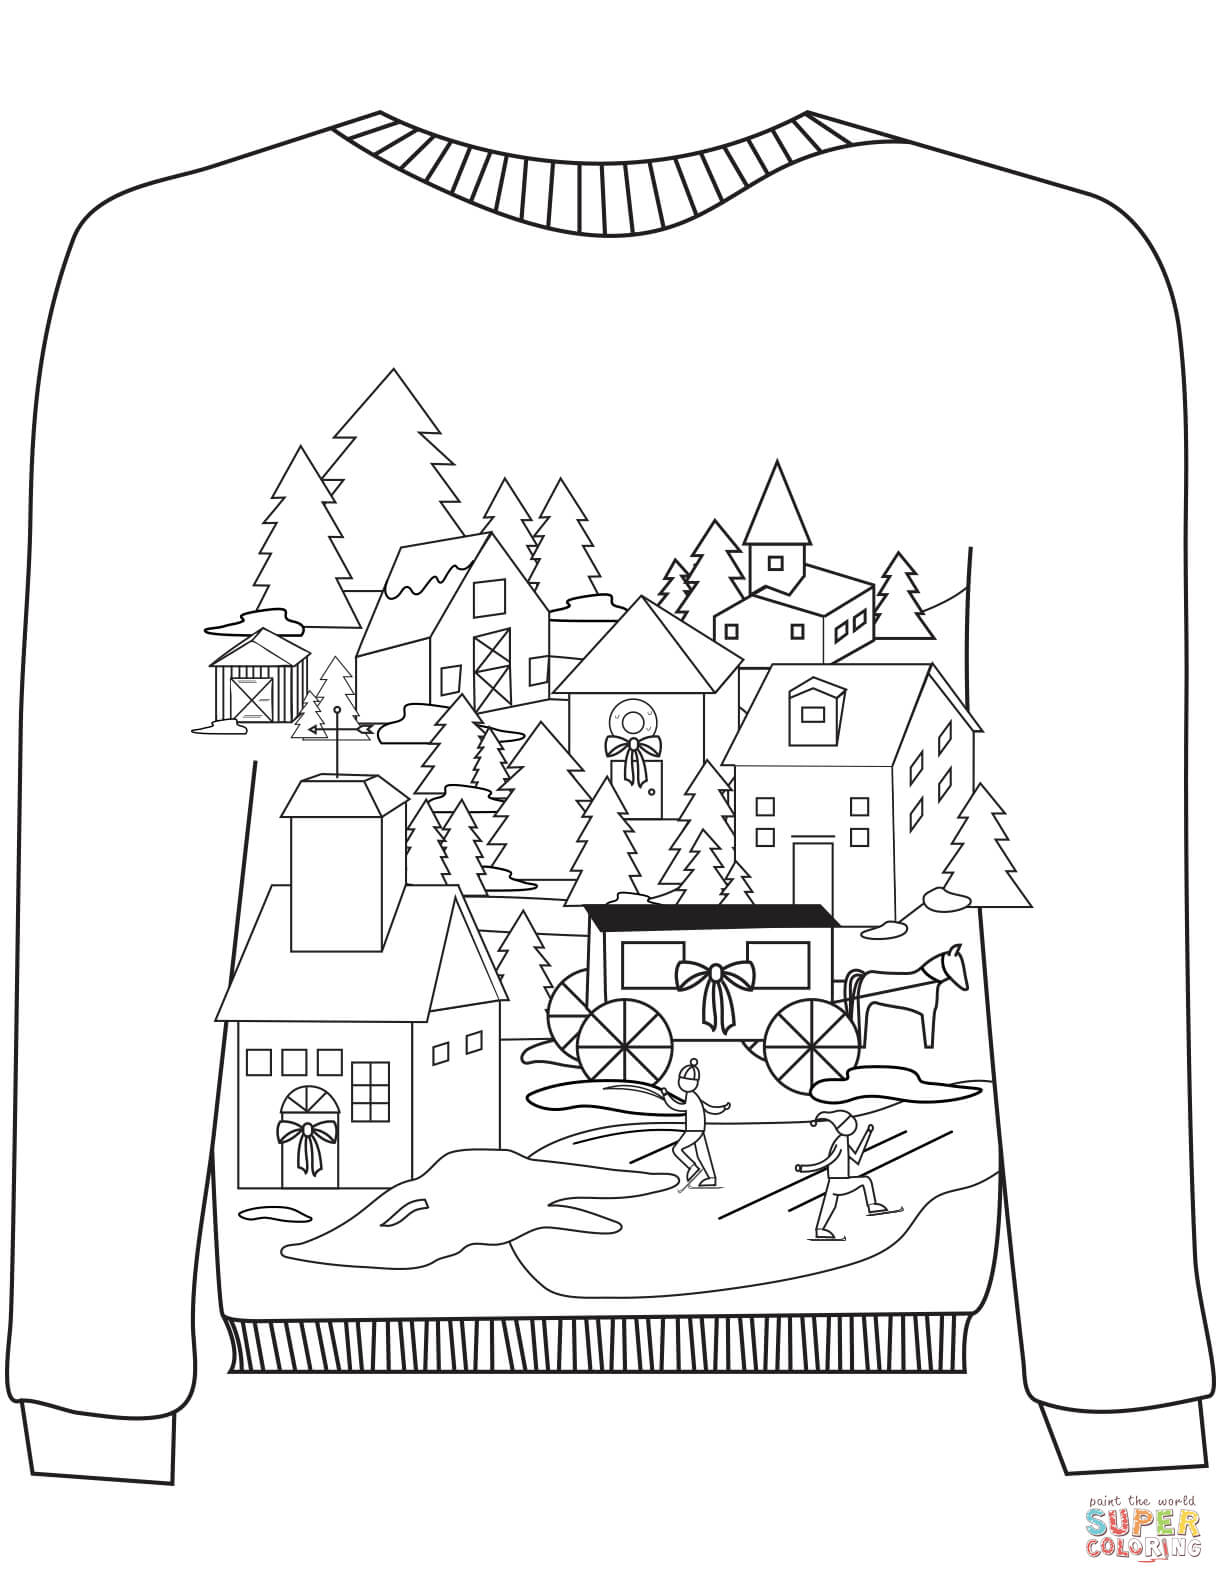 Christmas Ugly Sweater With A Village Motif Coloring Page Free